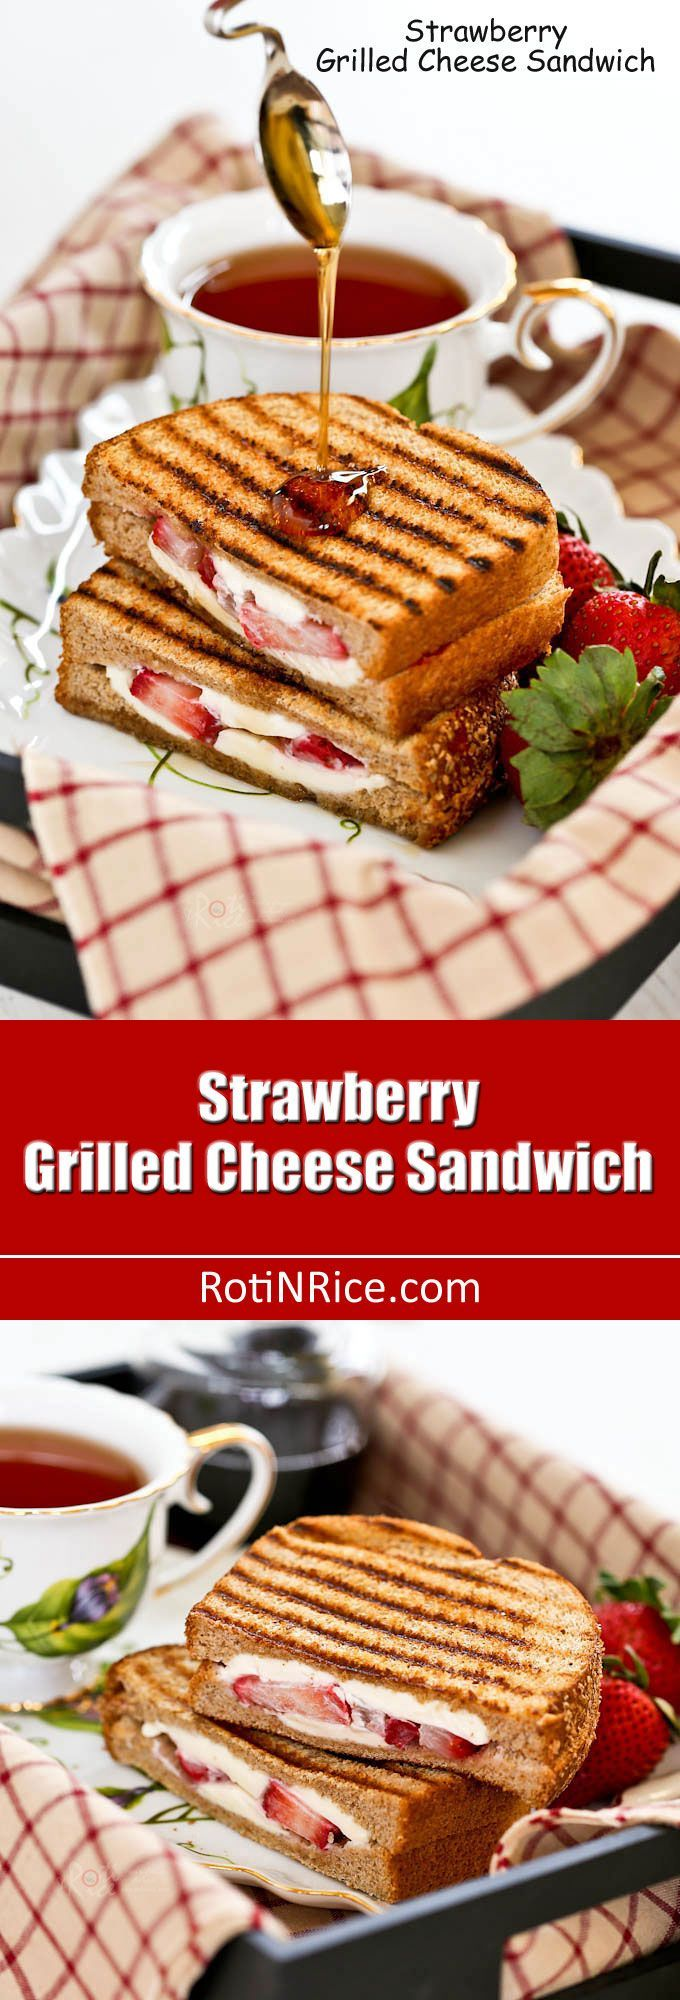 Enjoy your fruit and sandwich together in this Strawberry Grilled Cheese Sandwich. Delicious as is or drizzled with maple syrup. | http://RotiNRice.com